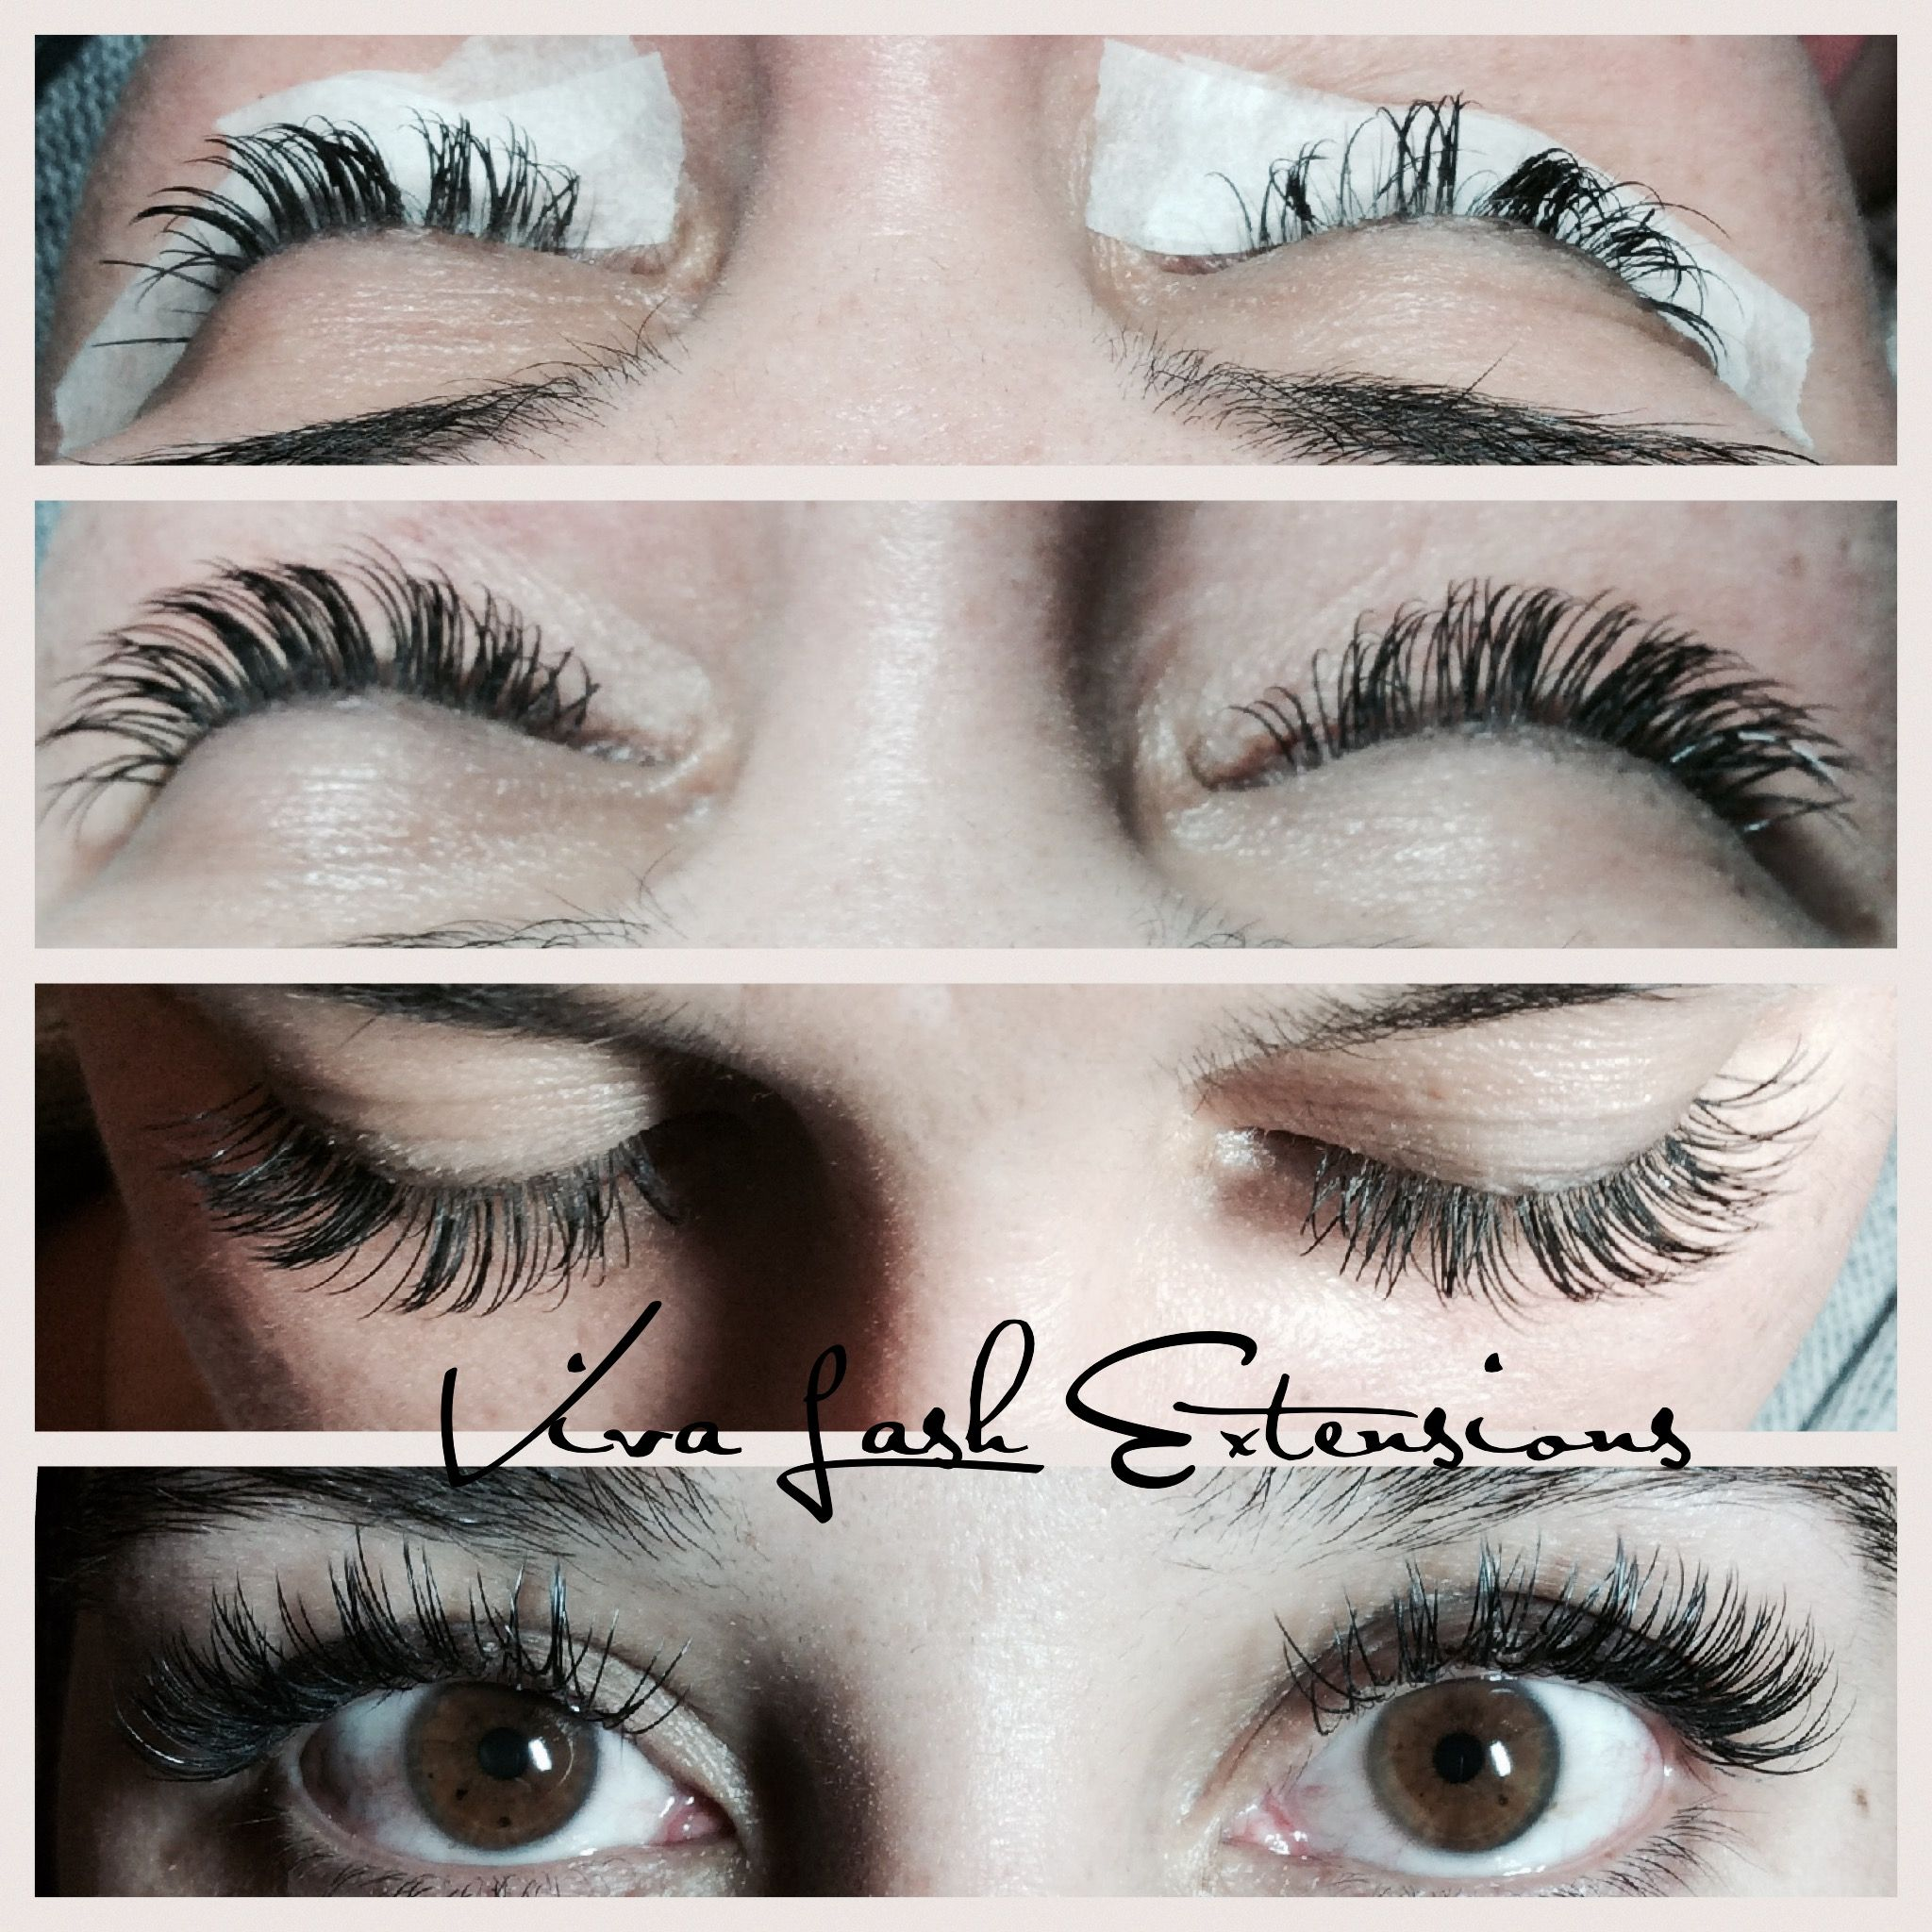 4fb7f89d539 Join the lash club. I love how natural these classic lashes look 11mm c curl